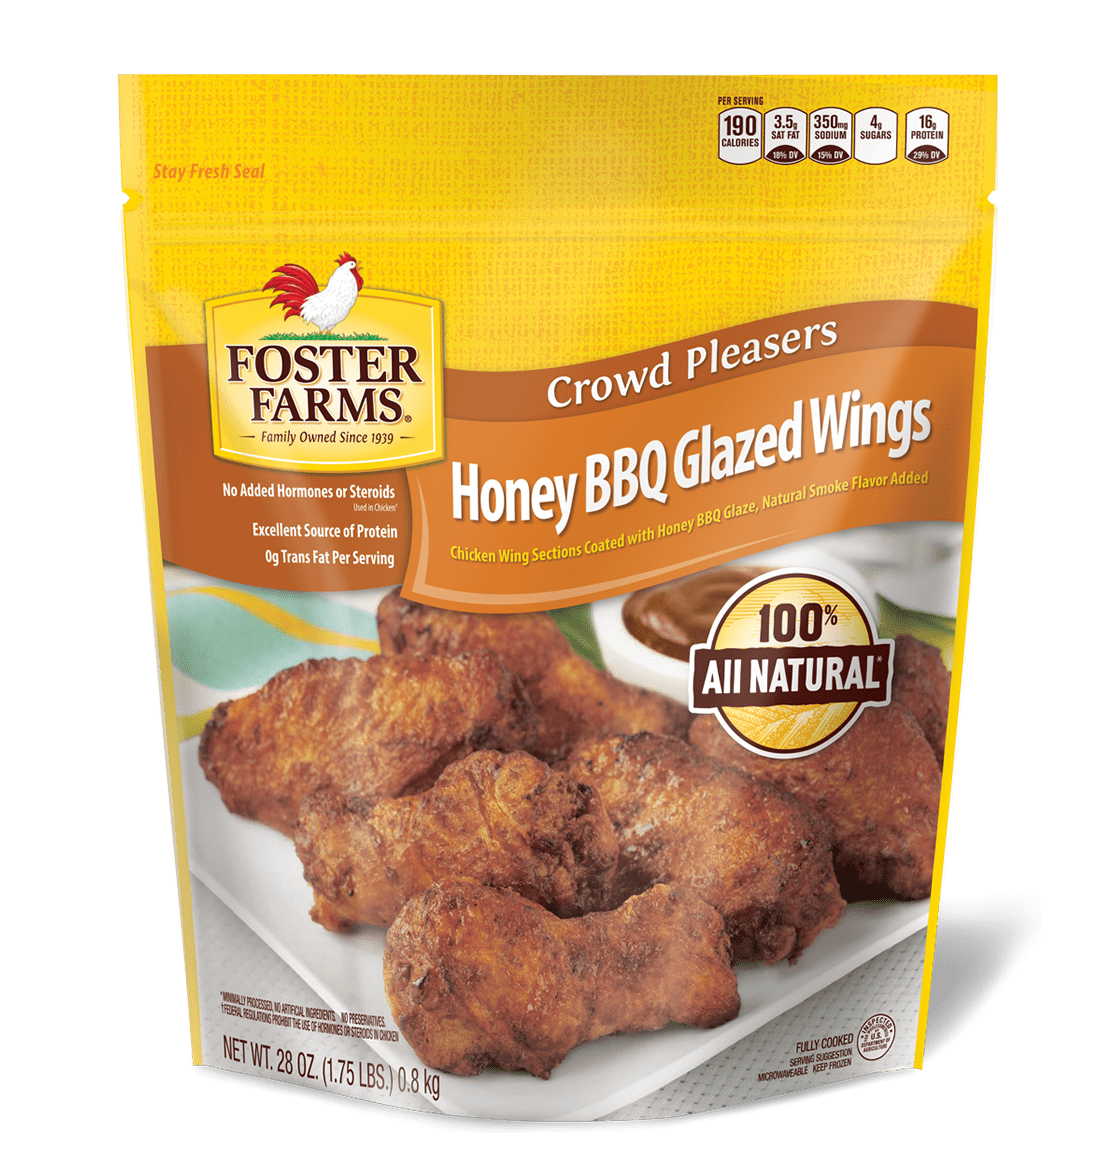 foster-farms-honey-bbq-glazed-wings